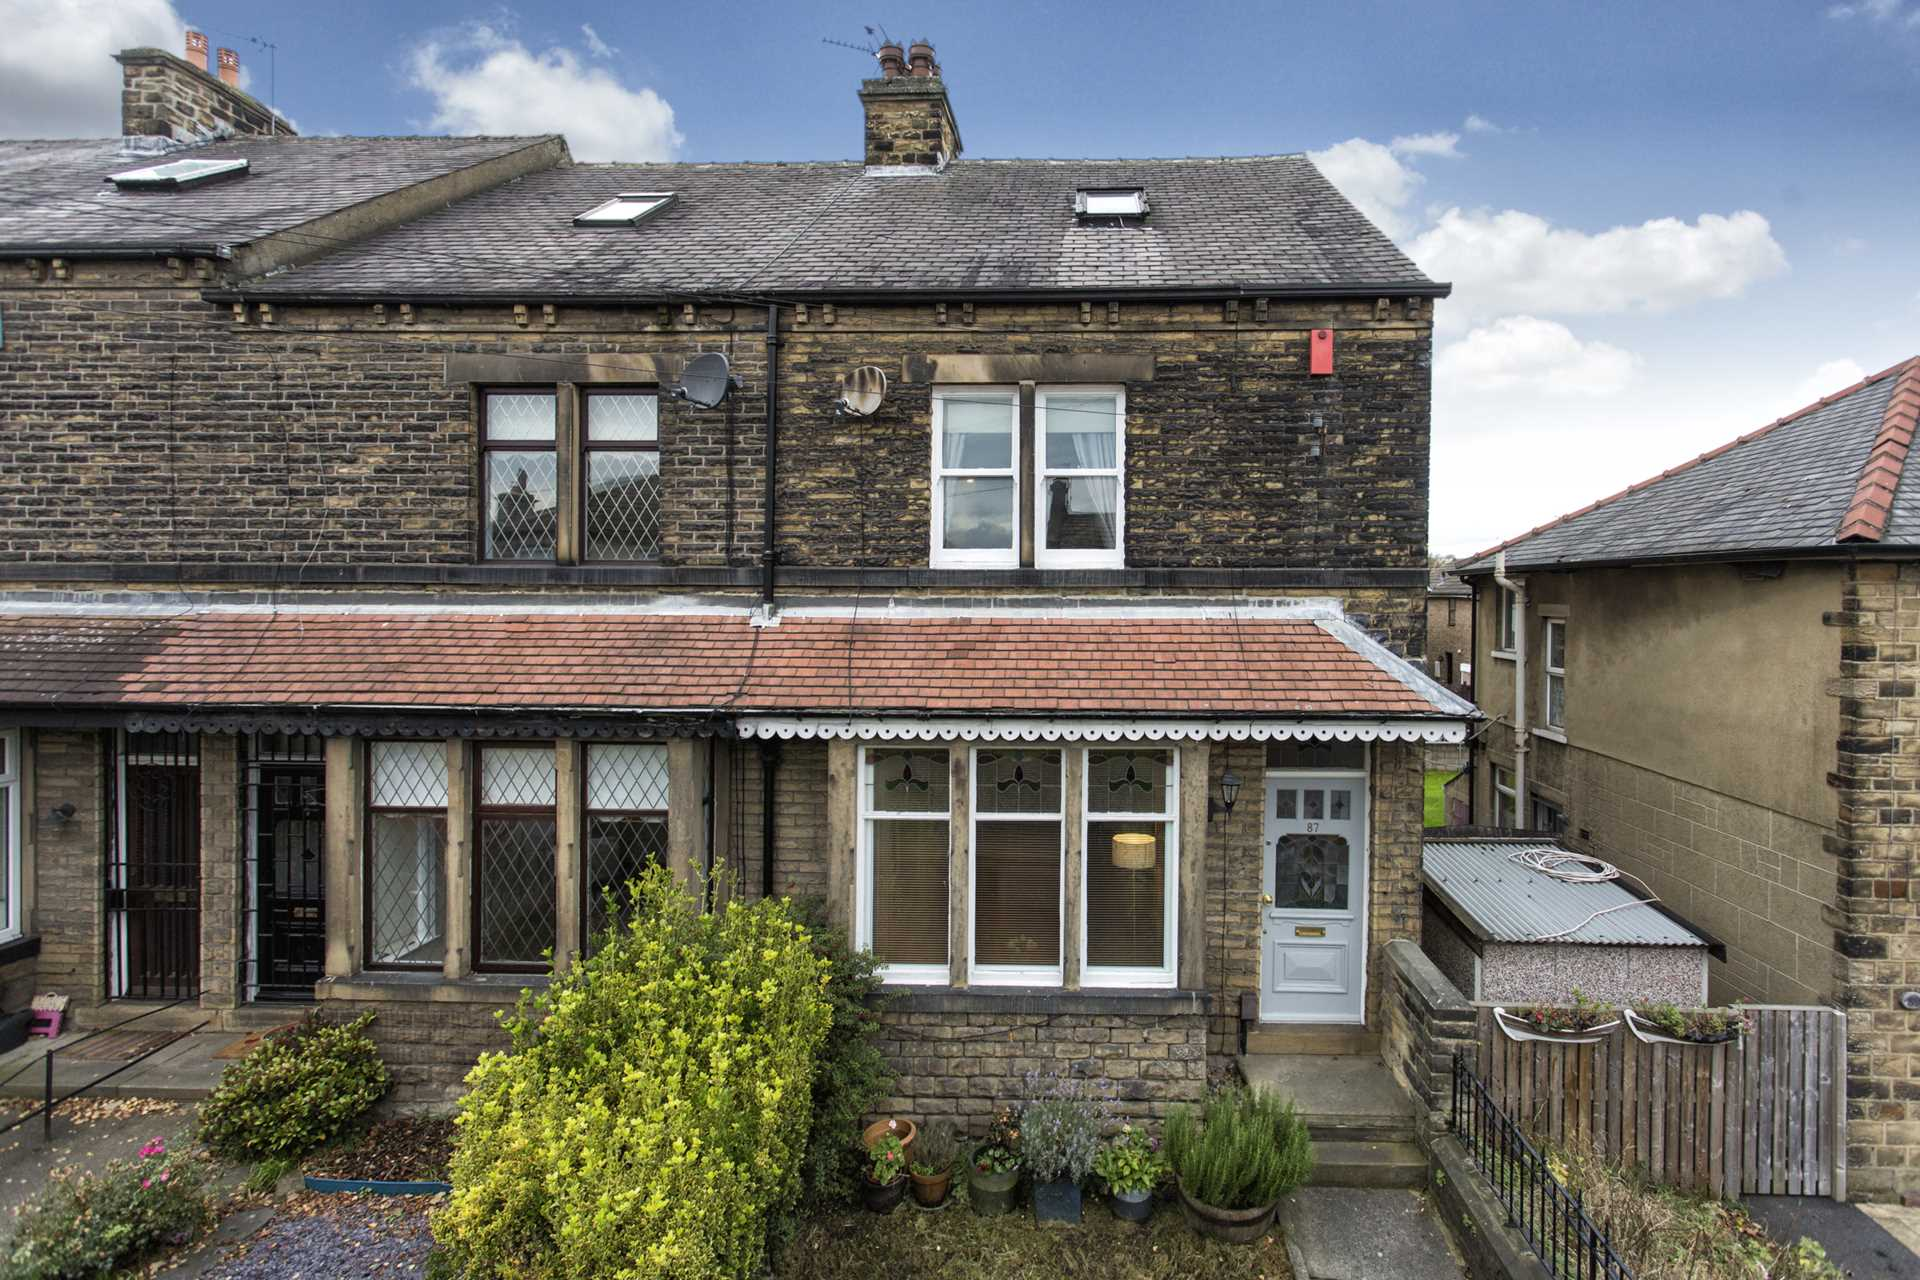 Property To Rent In Pudsey Farsley